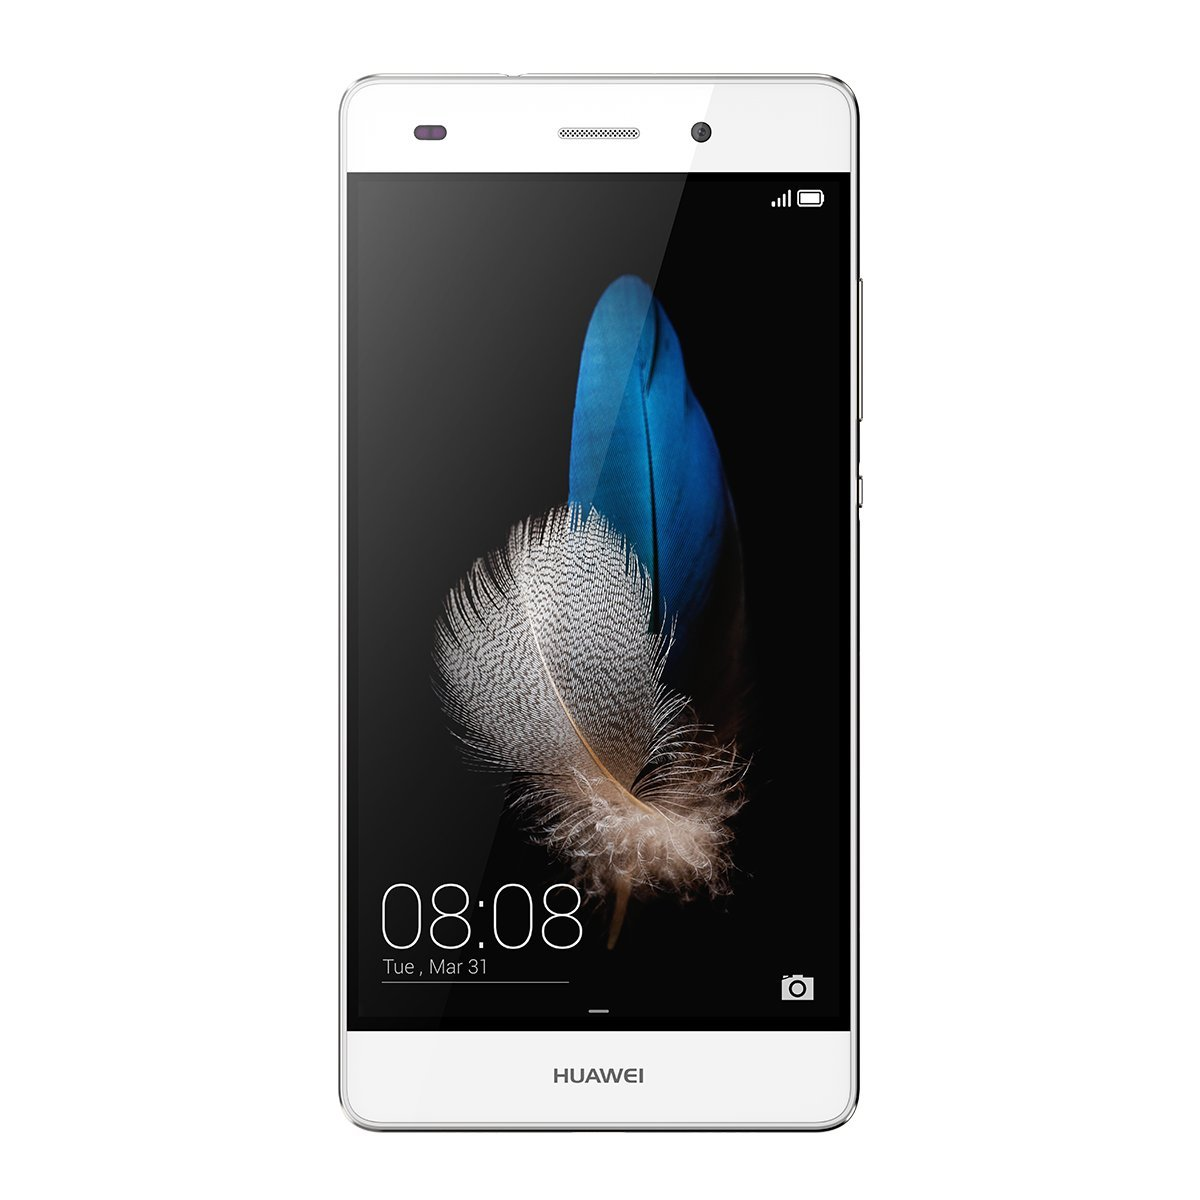 "Huawei P8 lite (US Version: ALE-L04) - 5"" Unlocked Android 4G LTE Smartphone - Octa Core 1.5GHz, Dual SIM, Gorilla Glass, 13MP Camera - White (U.S. Warranty)"